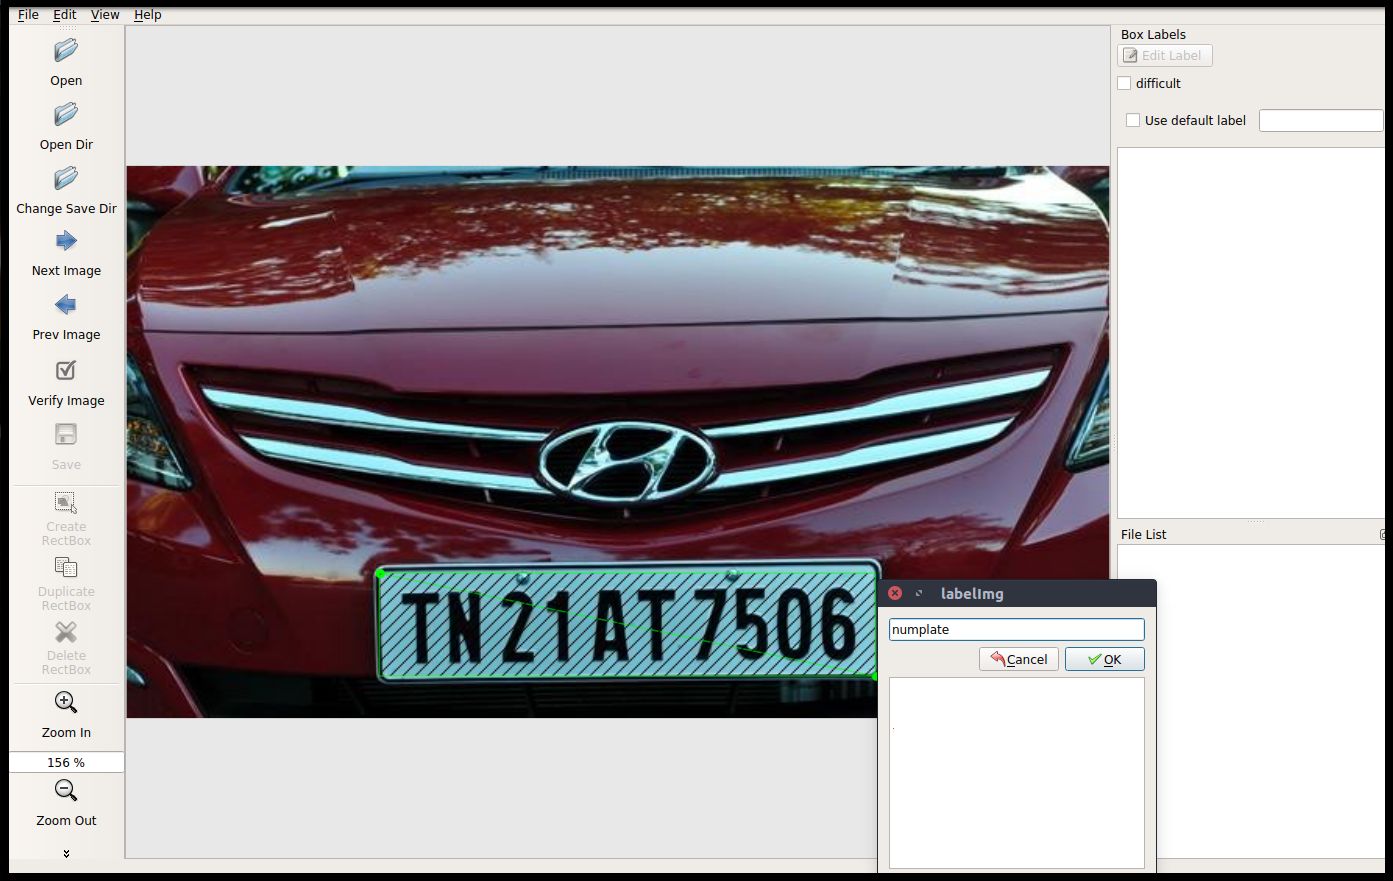 Automatic Number Plate Recognition by TFOD(ssd resnet) and